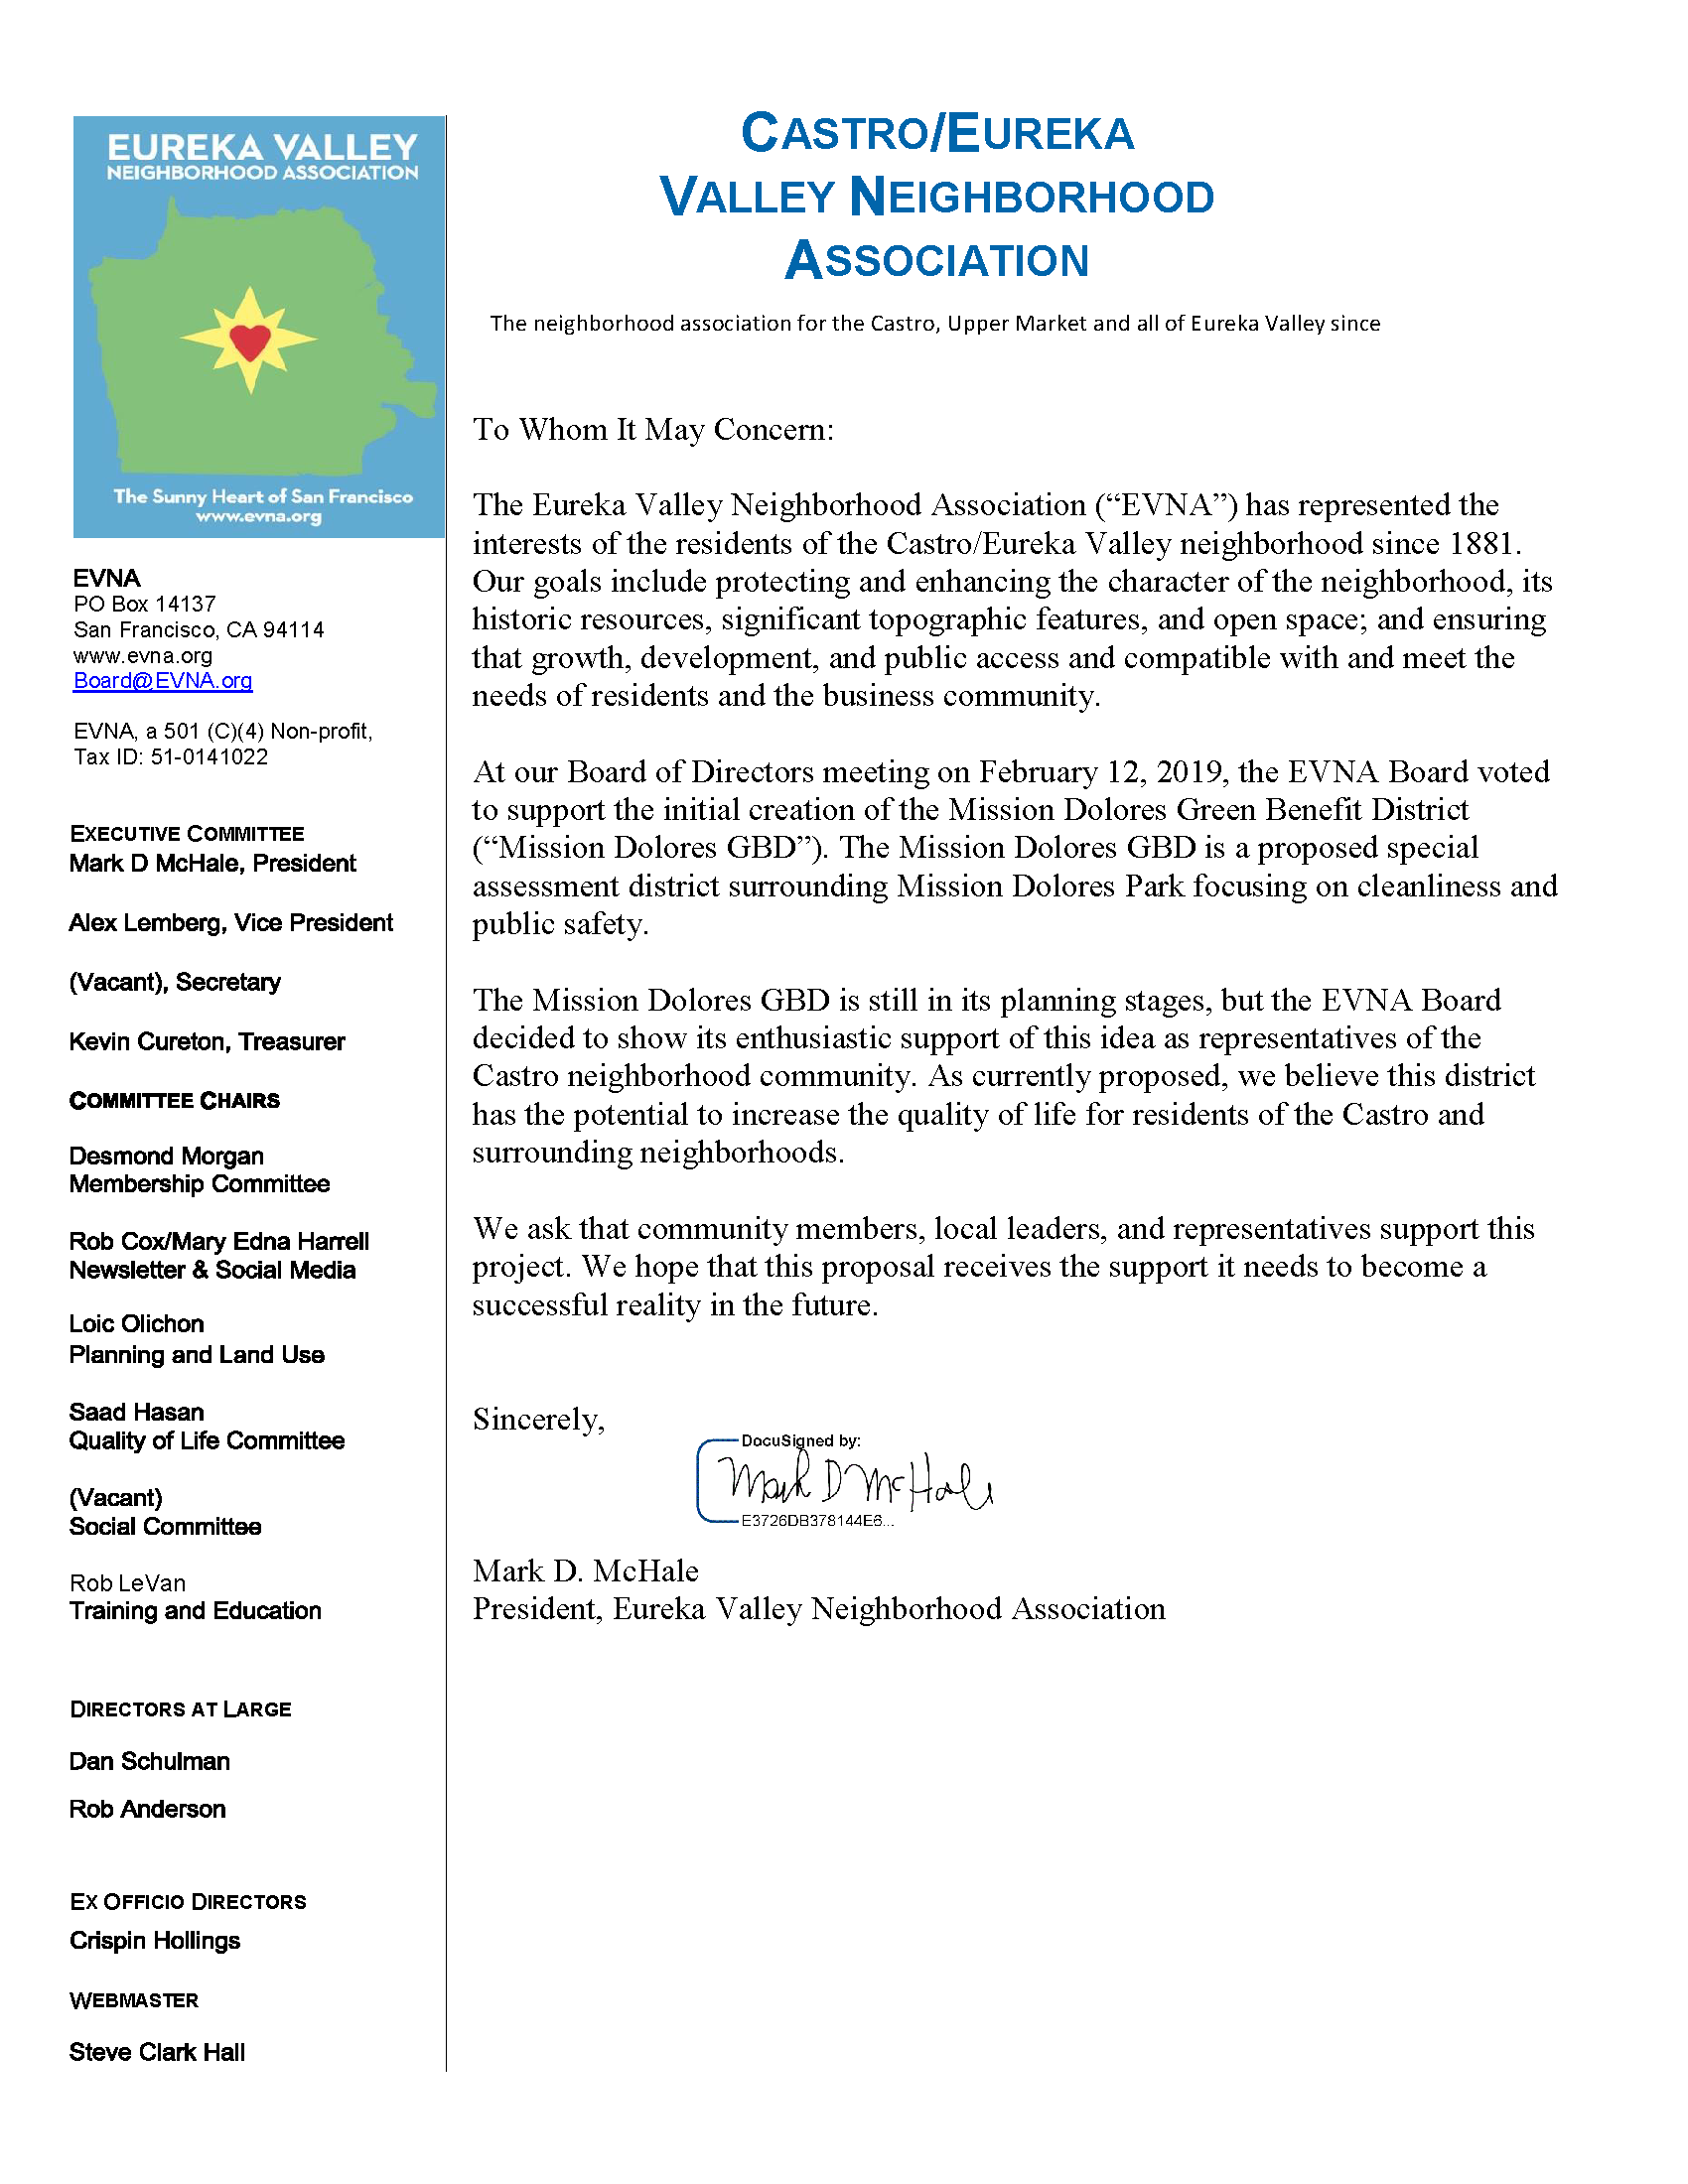 EVNA 2019 Letter of Support - Mission Dolores GBD